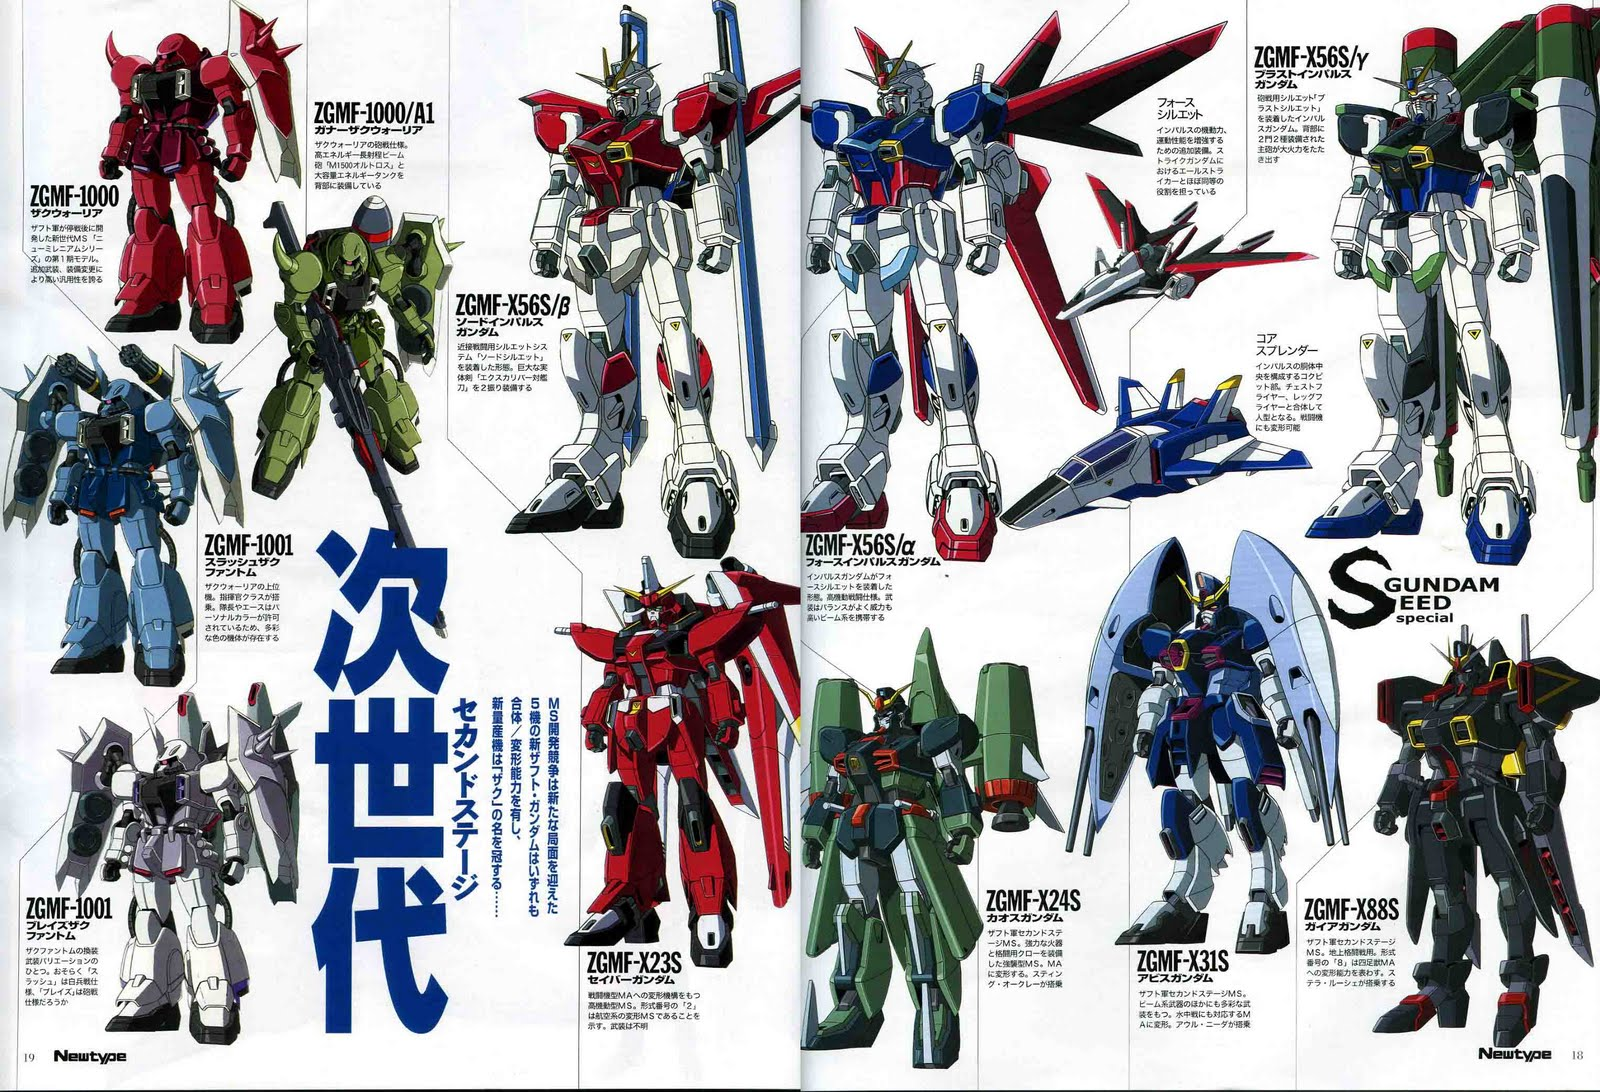 1600x1092 - Mobile Suit Gundam Seed Destiny Wallpapers 26